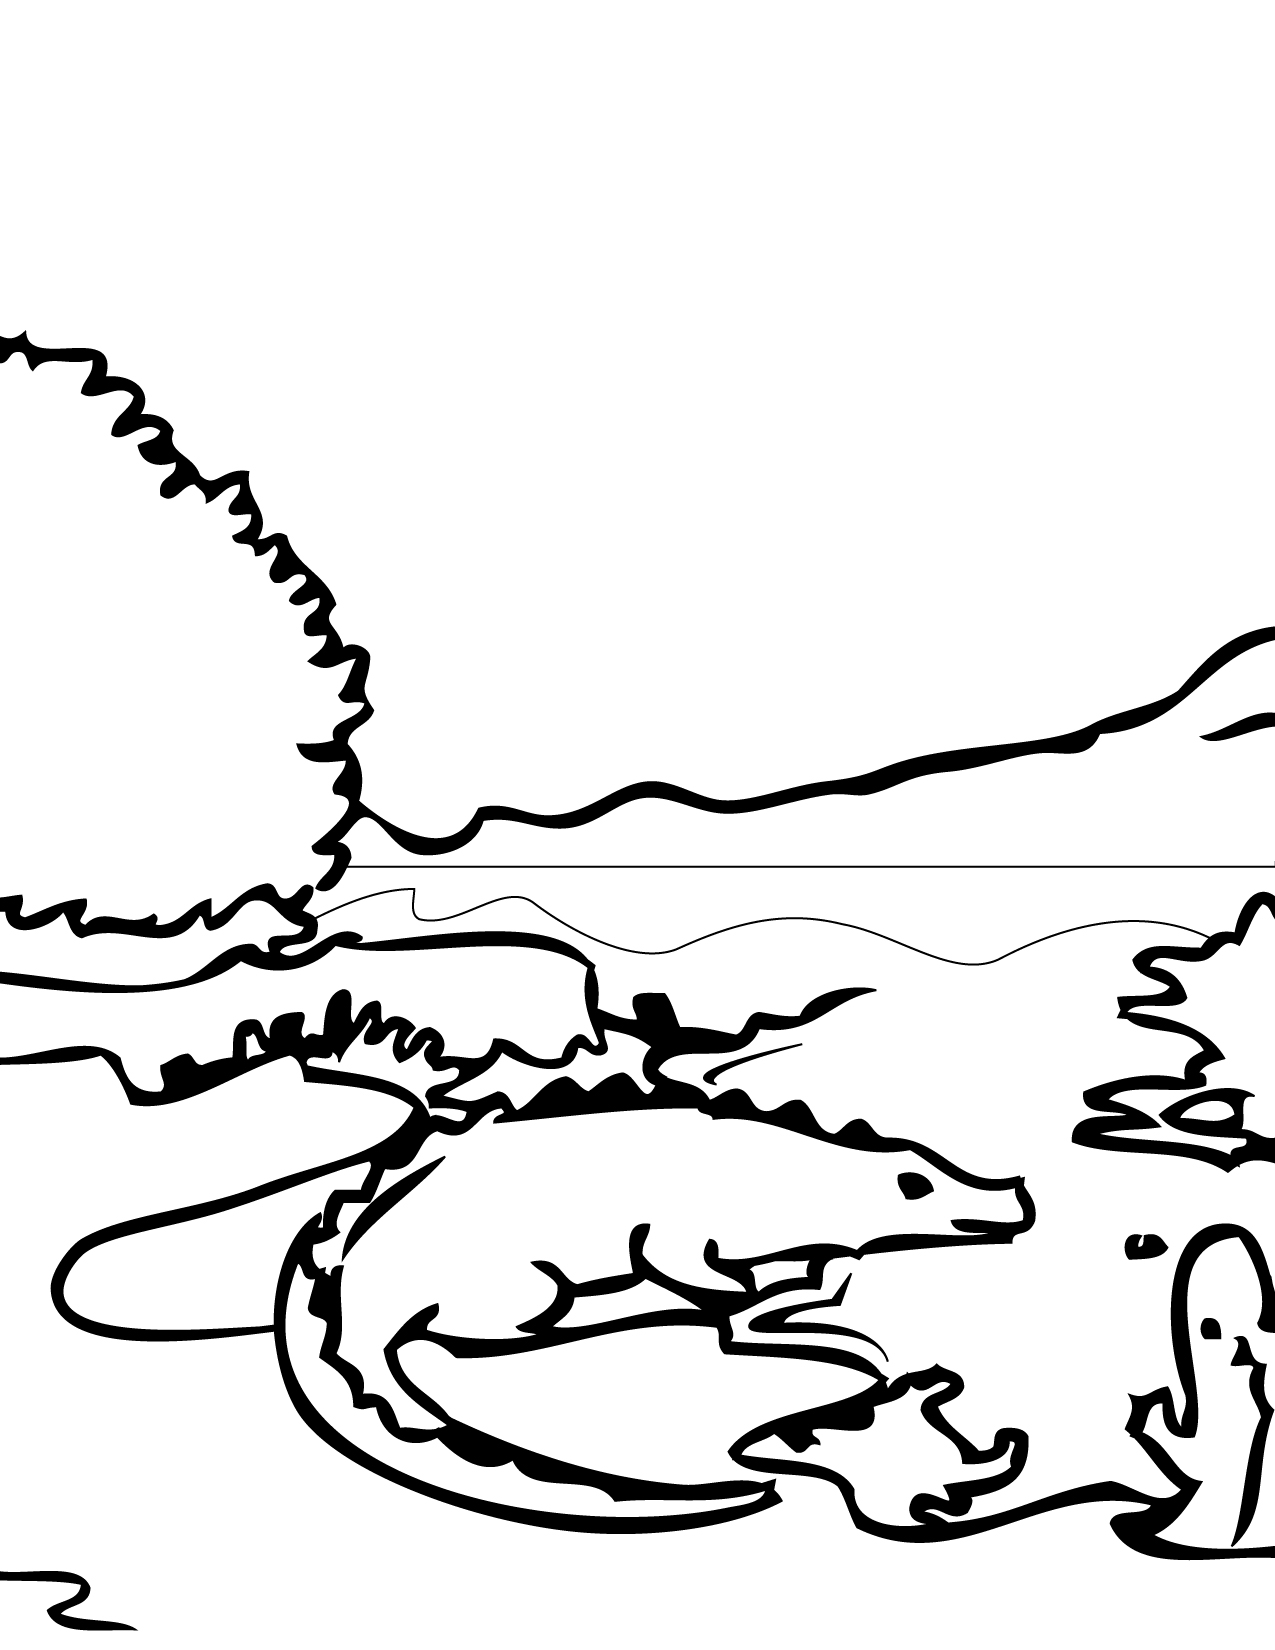 Everglades coloring, Download Everglades coloring